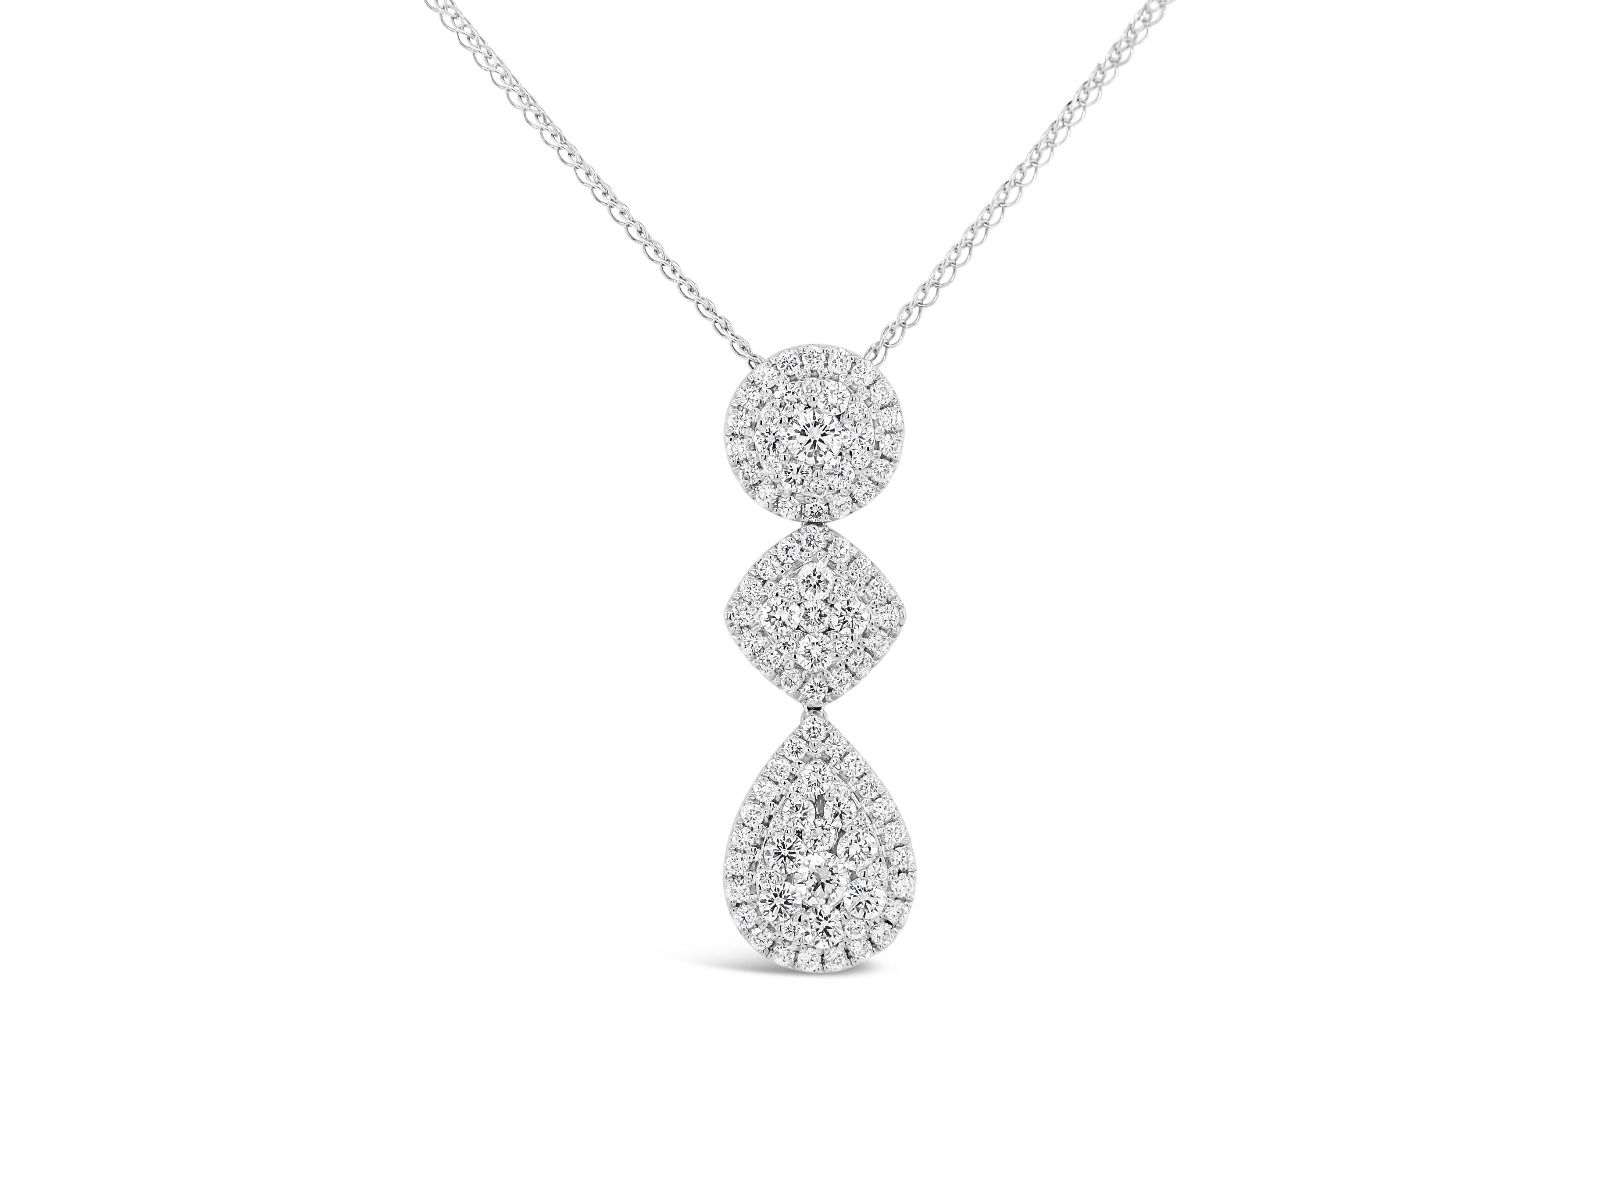 White Gold Round Cut Diamond Pendant